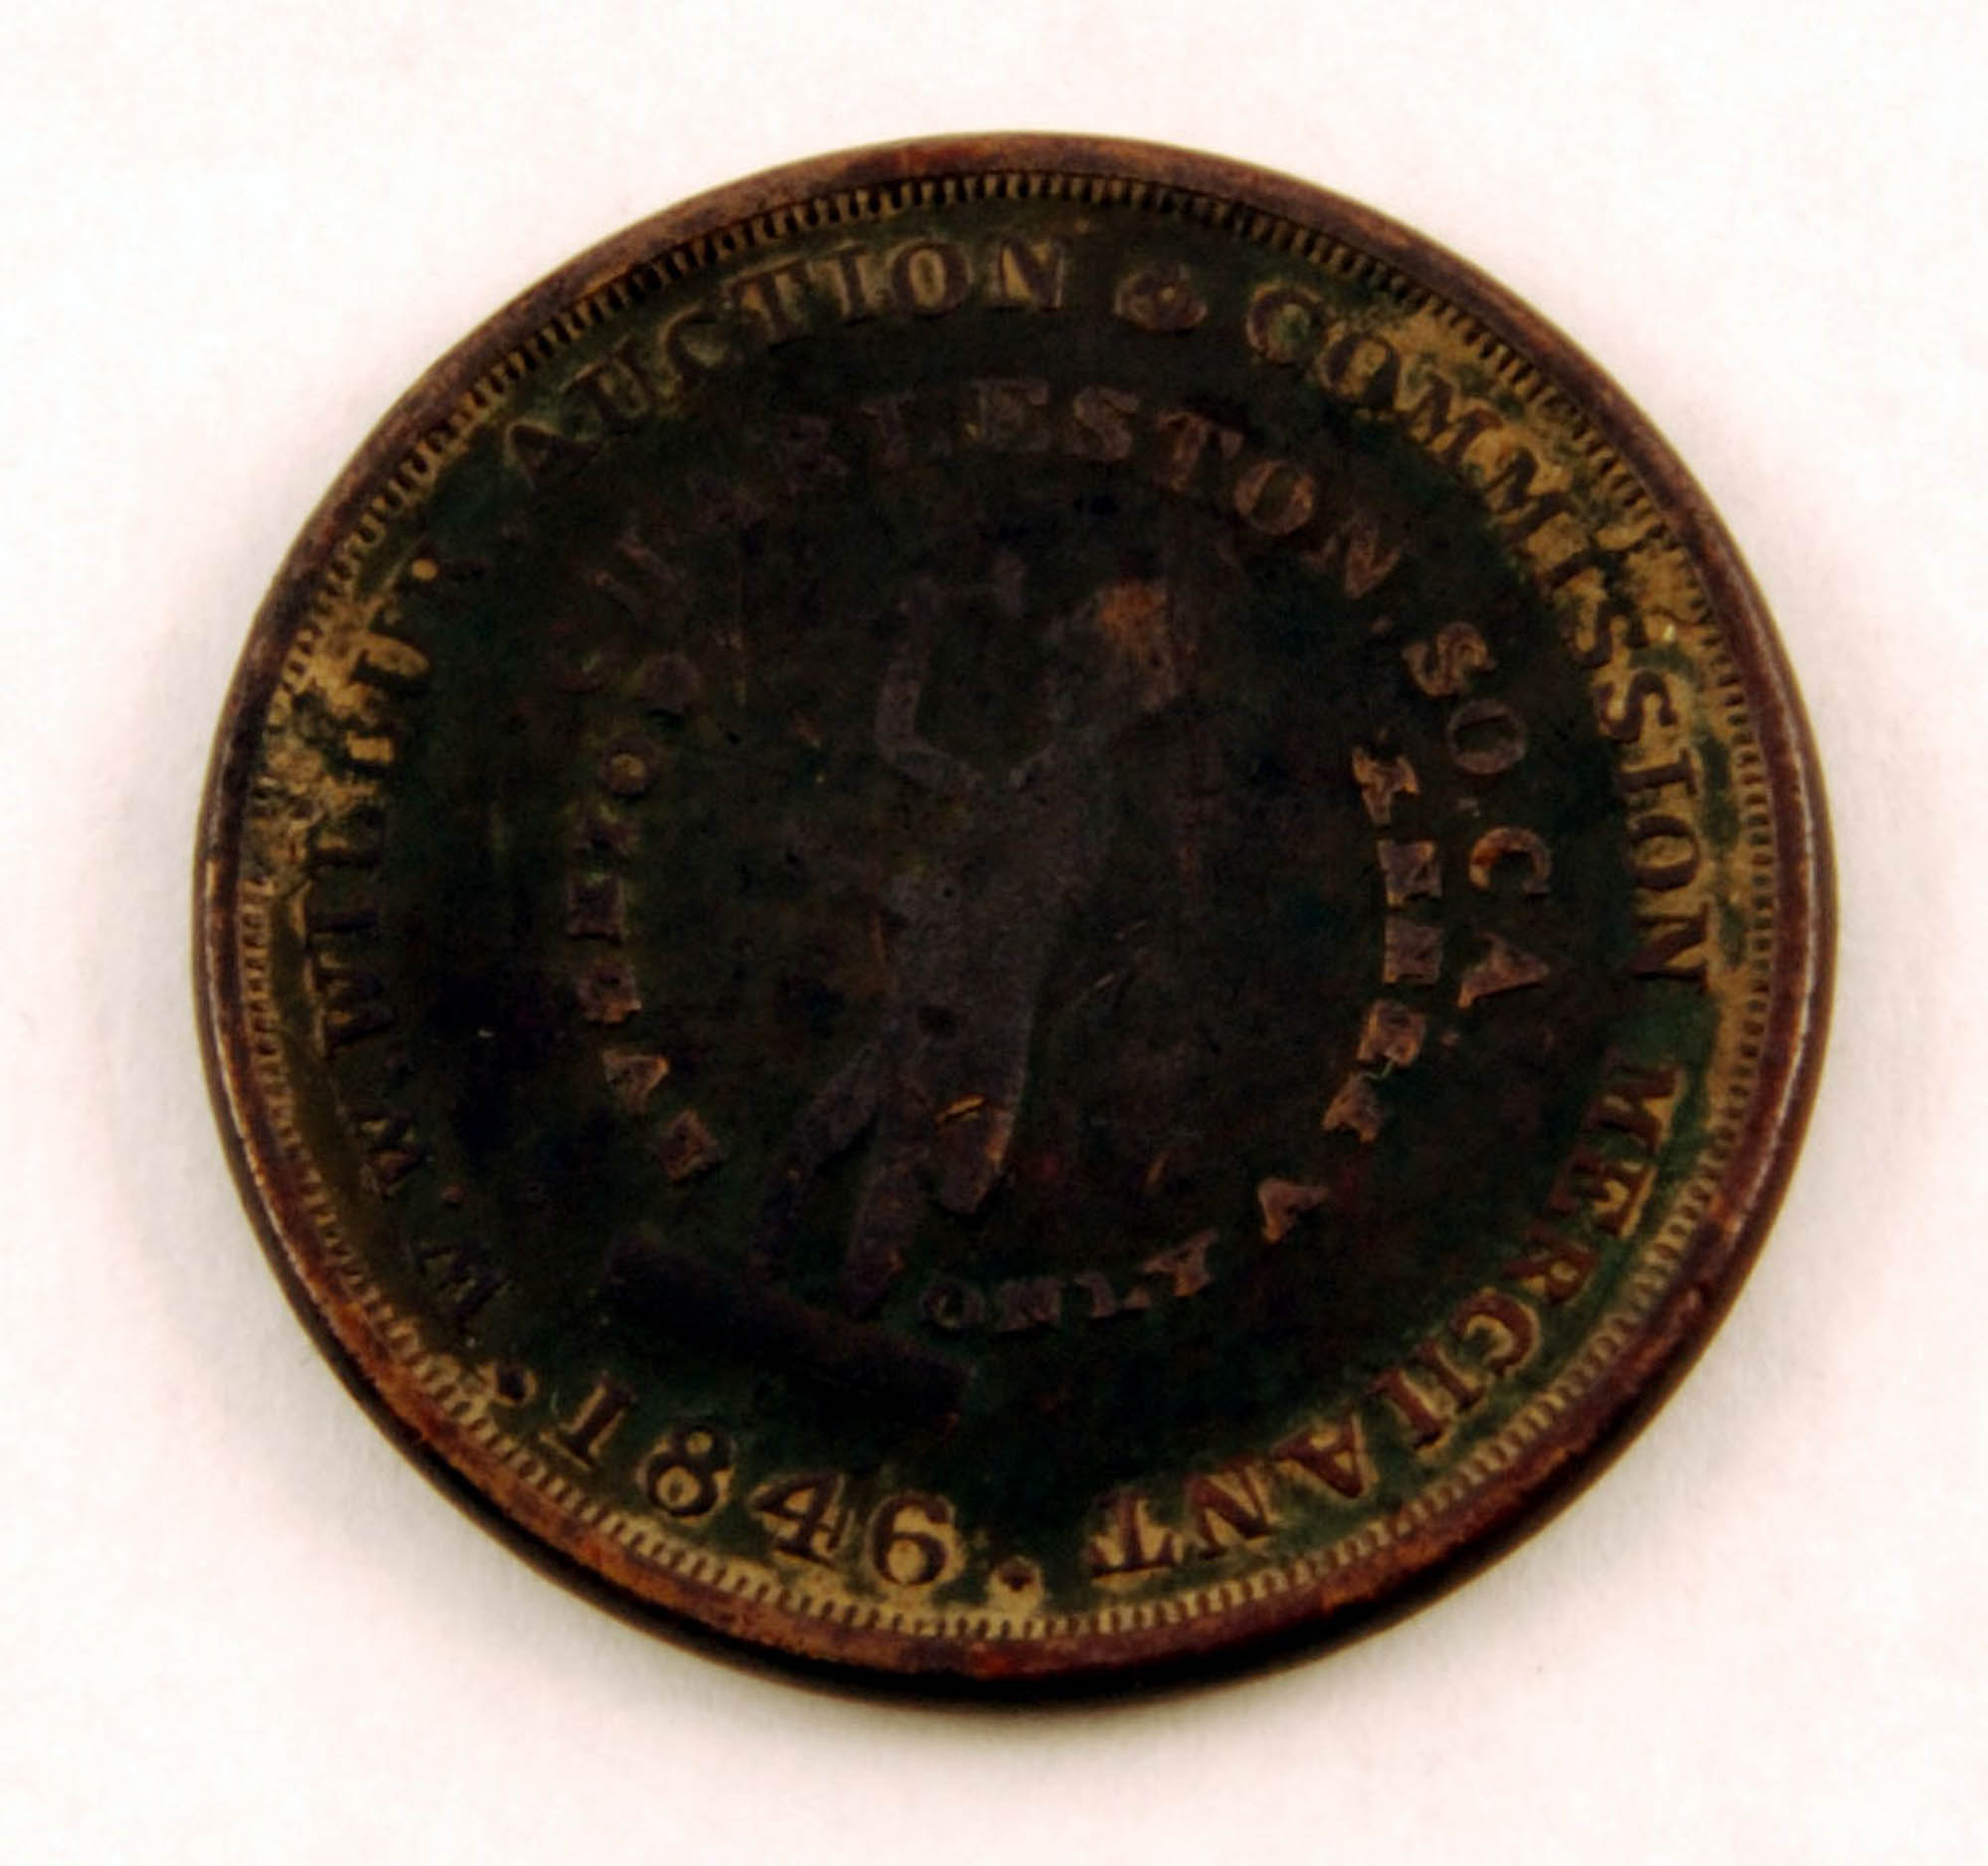 Slave auctioneer's token